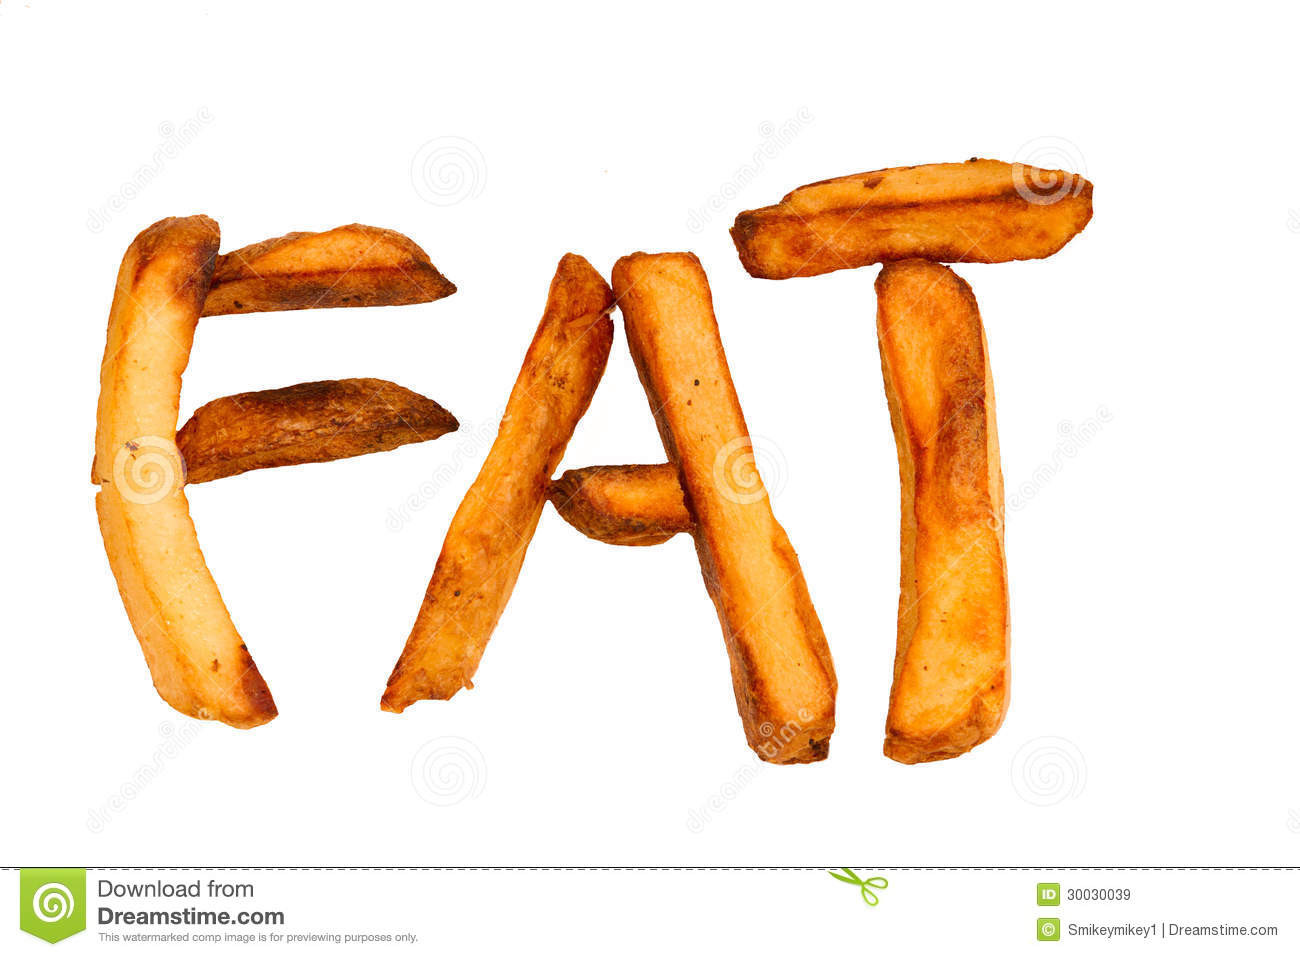 How Do You Spell Potato  Oven Baked Potato Chips Isolated Spelling FAT Royalty Free